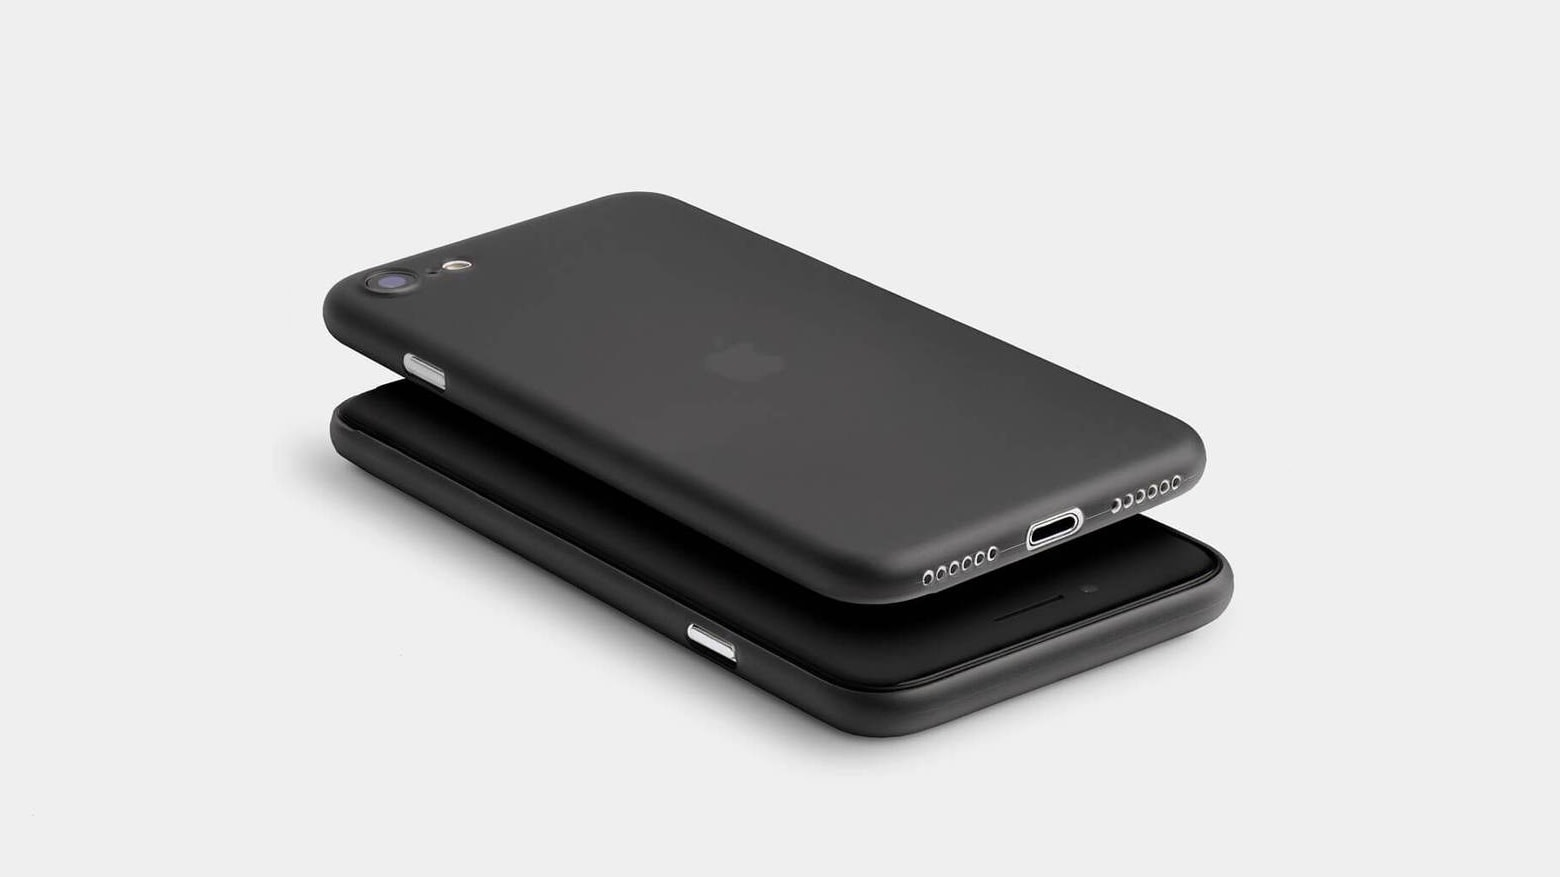 Possibly the iPhone SE in in a Totallee case.